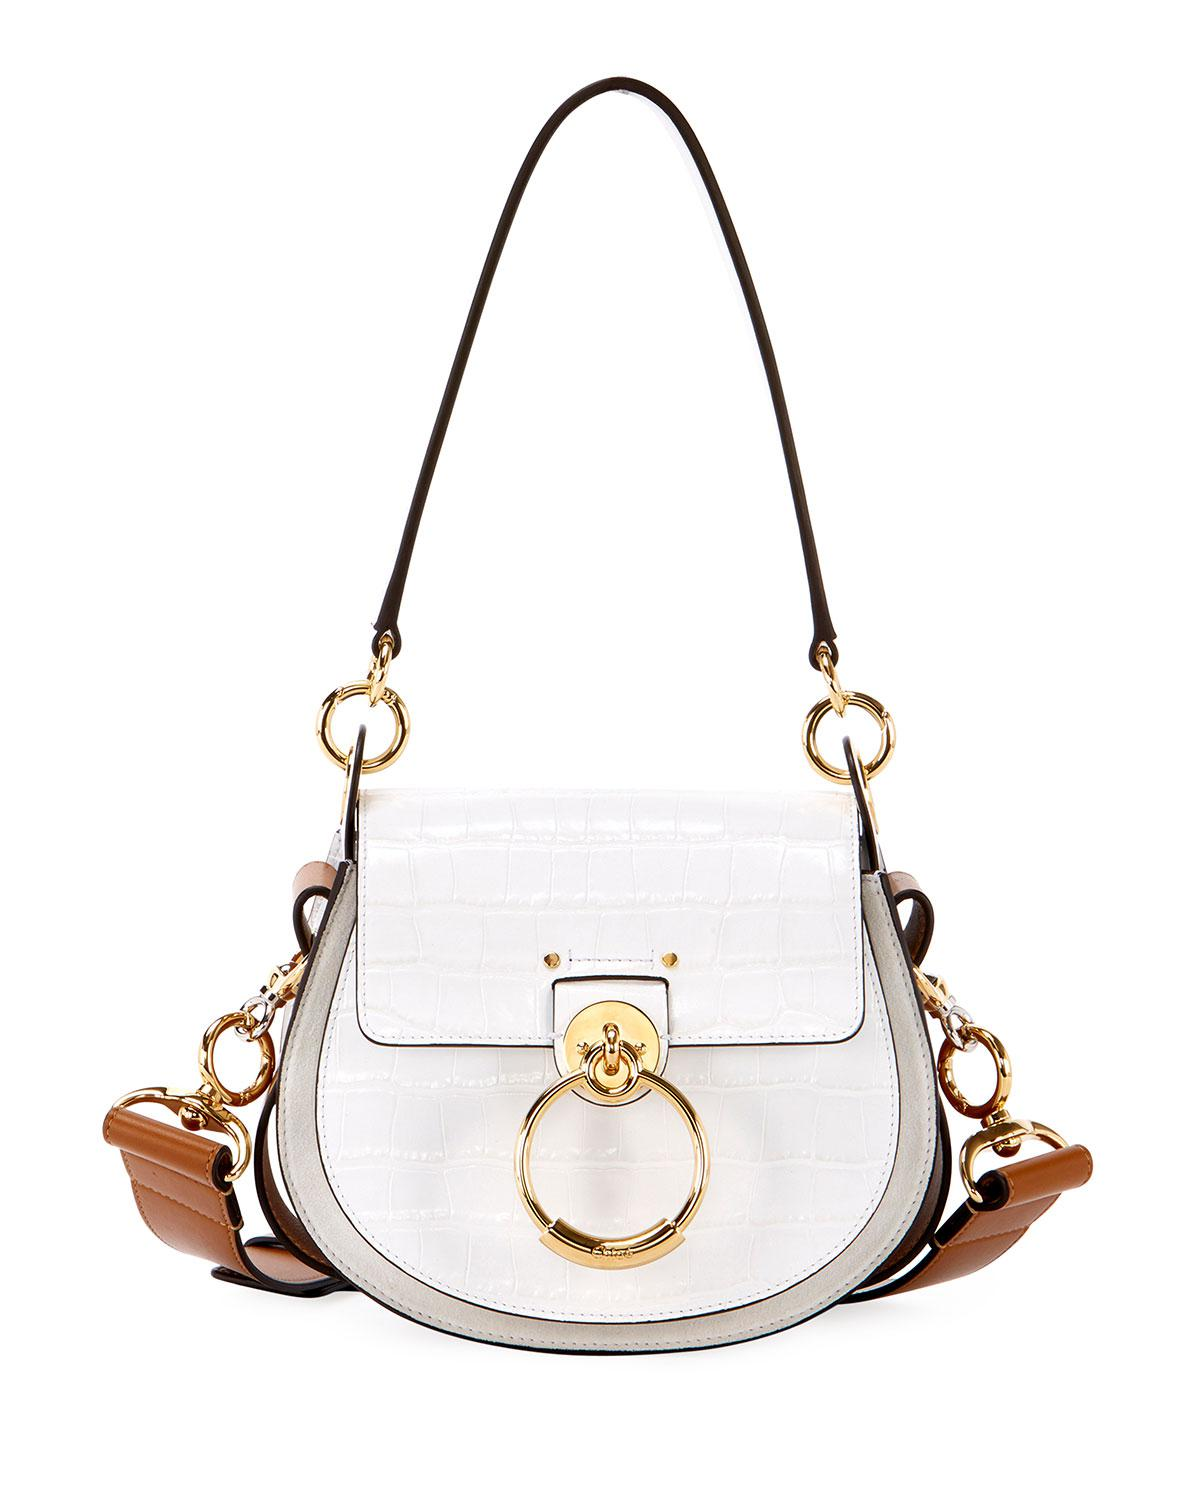 0d3658dbd1 Chloé - White Tess Small Embossed Leather Shoulder Bag - Lyst. View  fullscreen